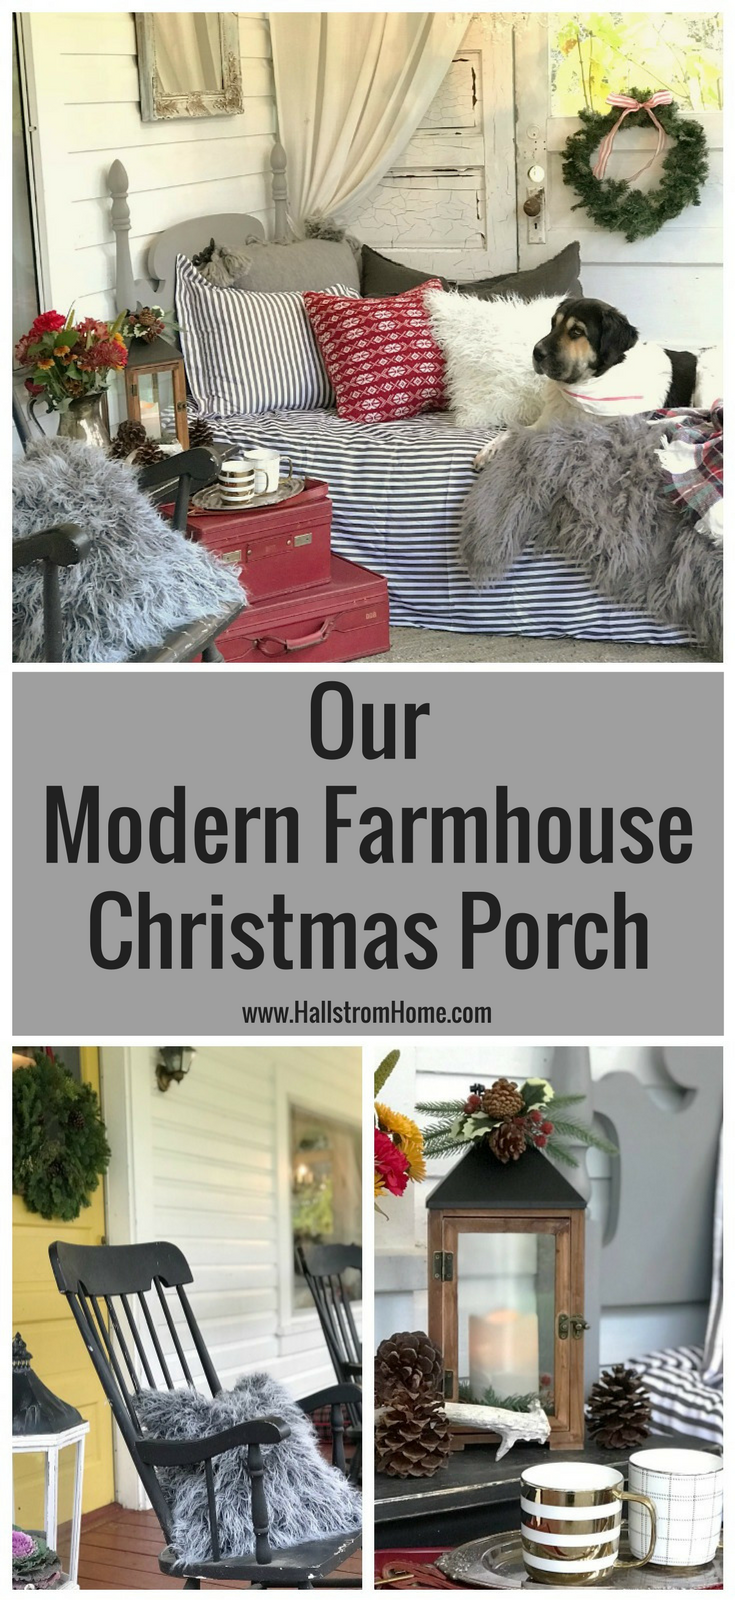 Our Modern Farmhouse Christmas Porch Hallstrom Home